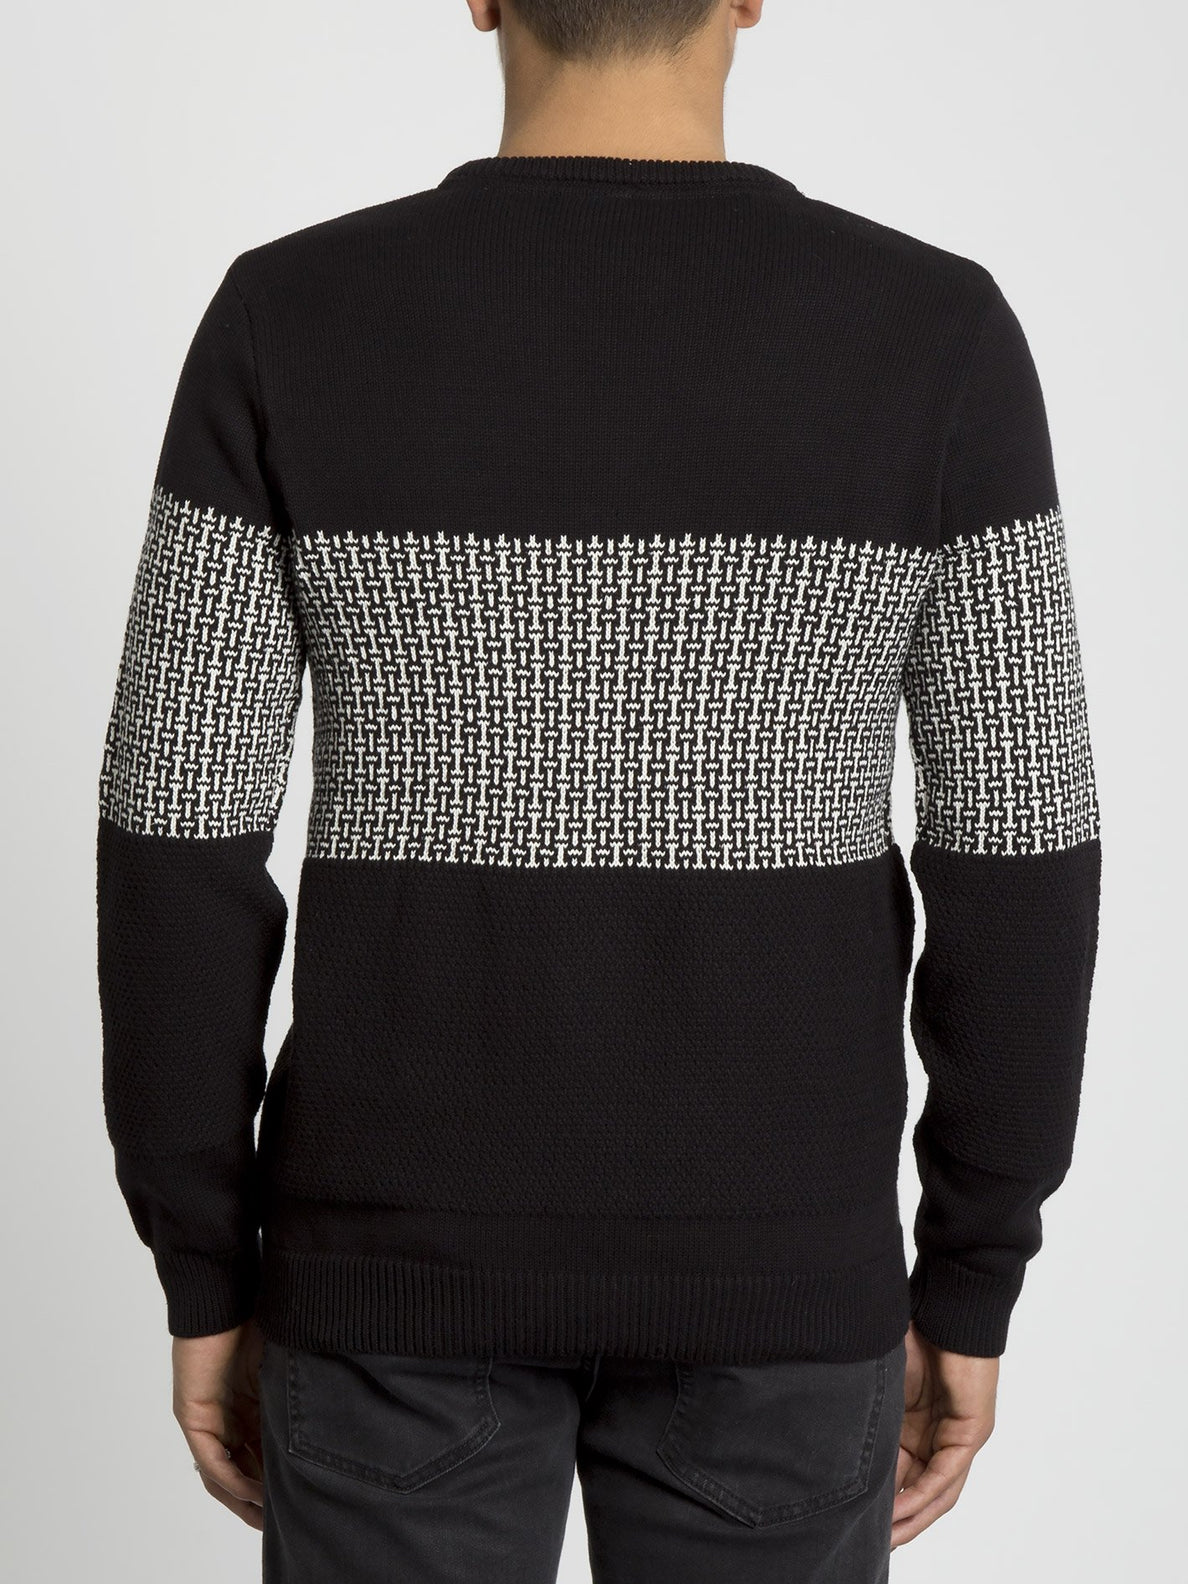 Past Your Time Sweater - Black (A0731901_BLK) [B]